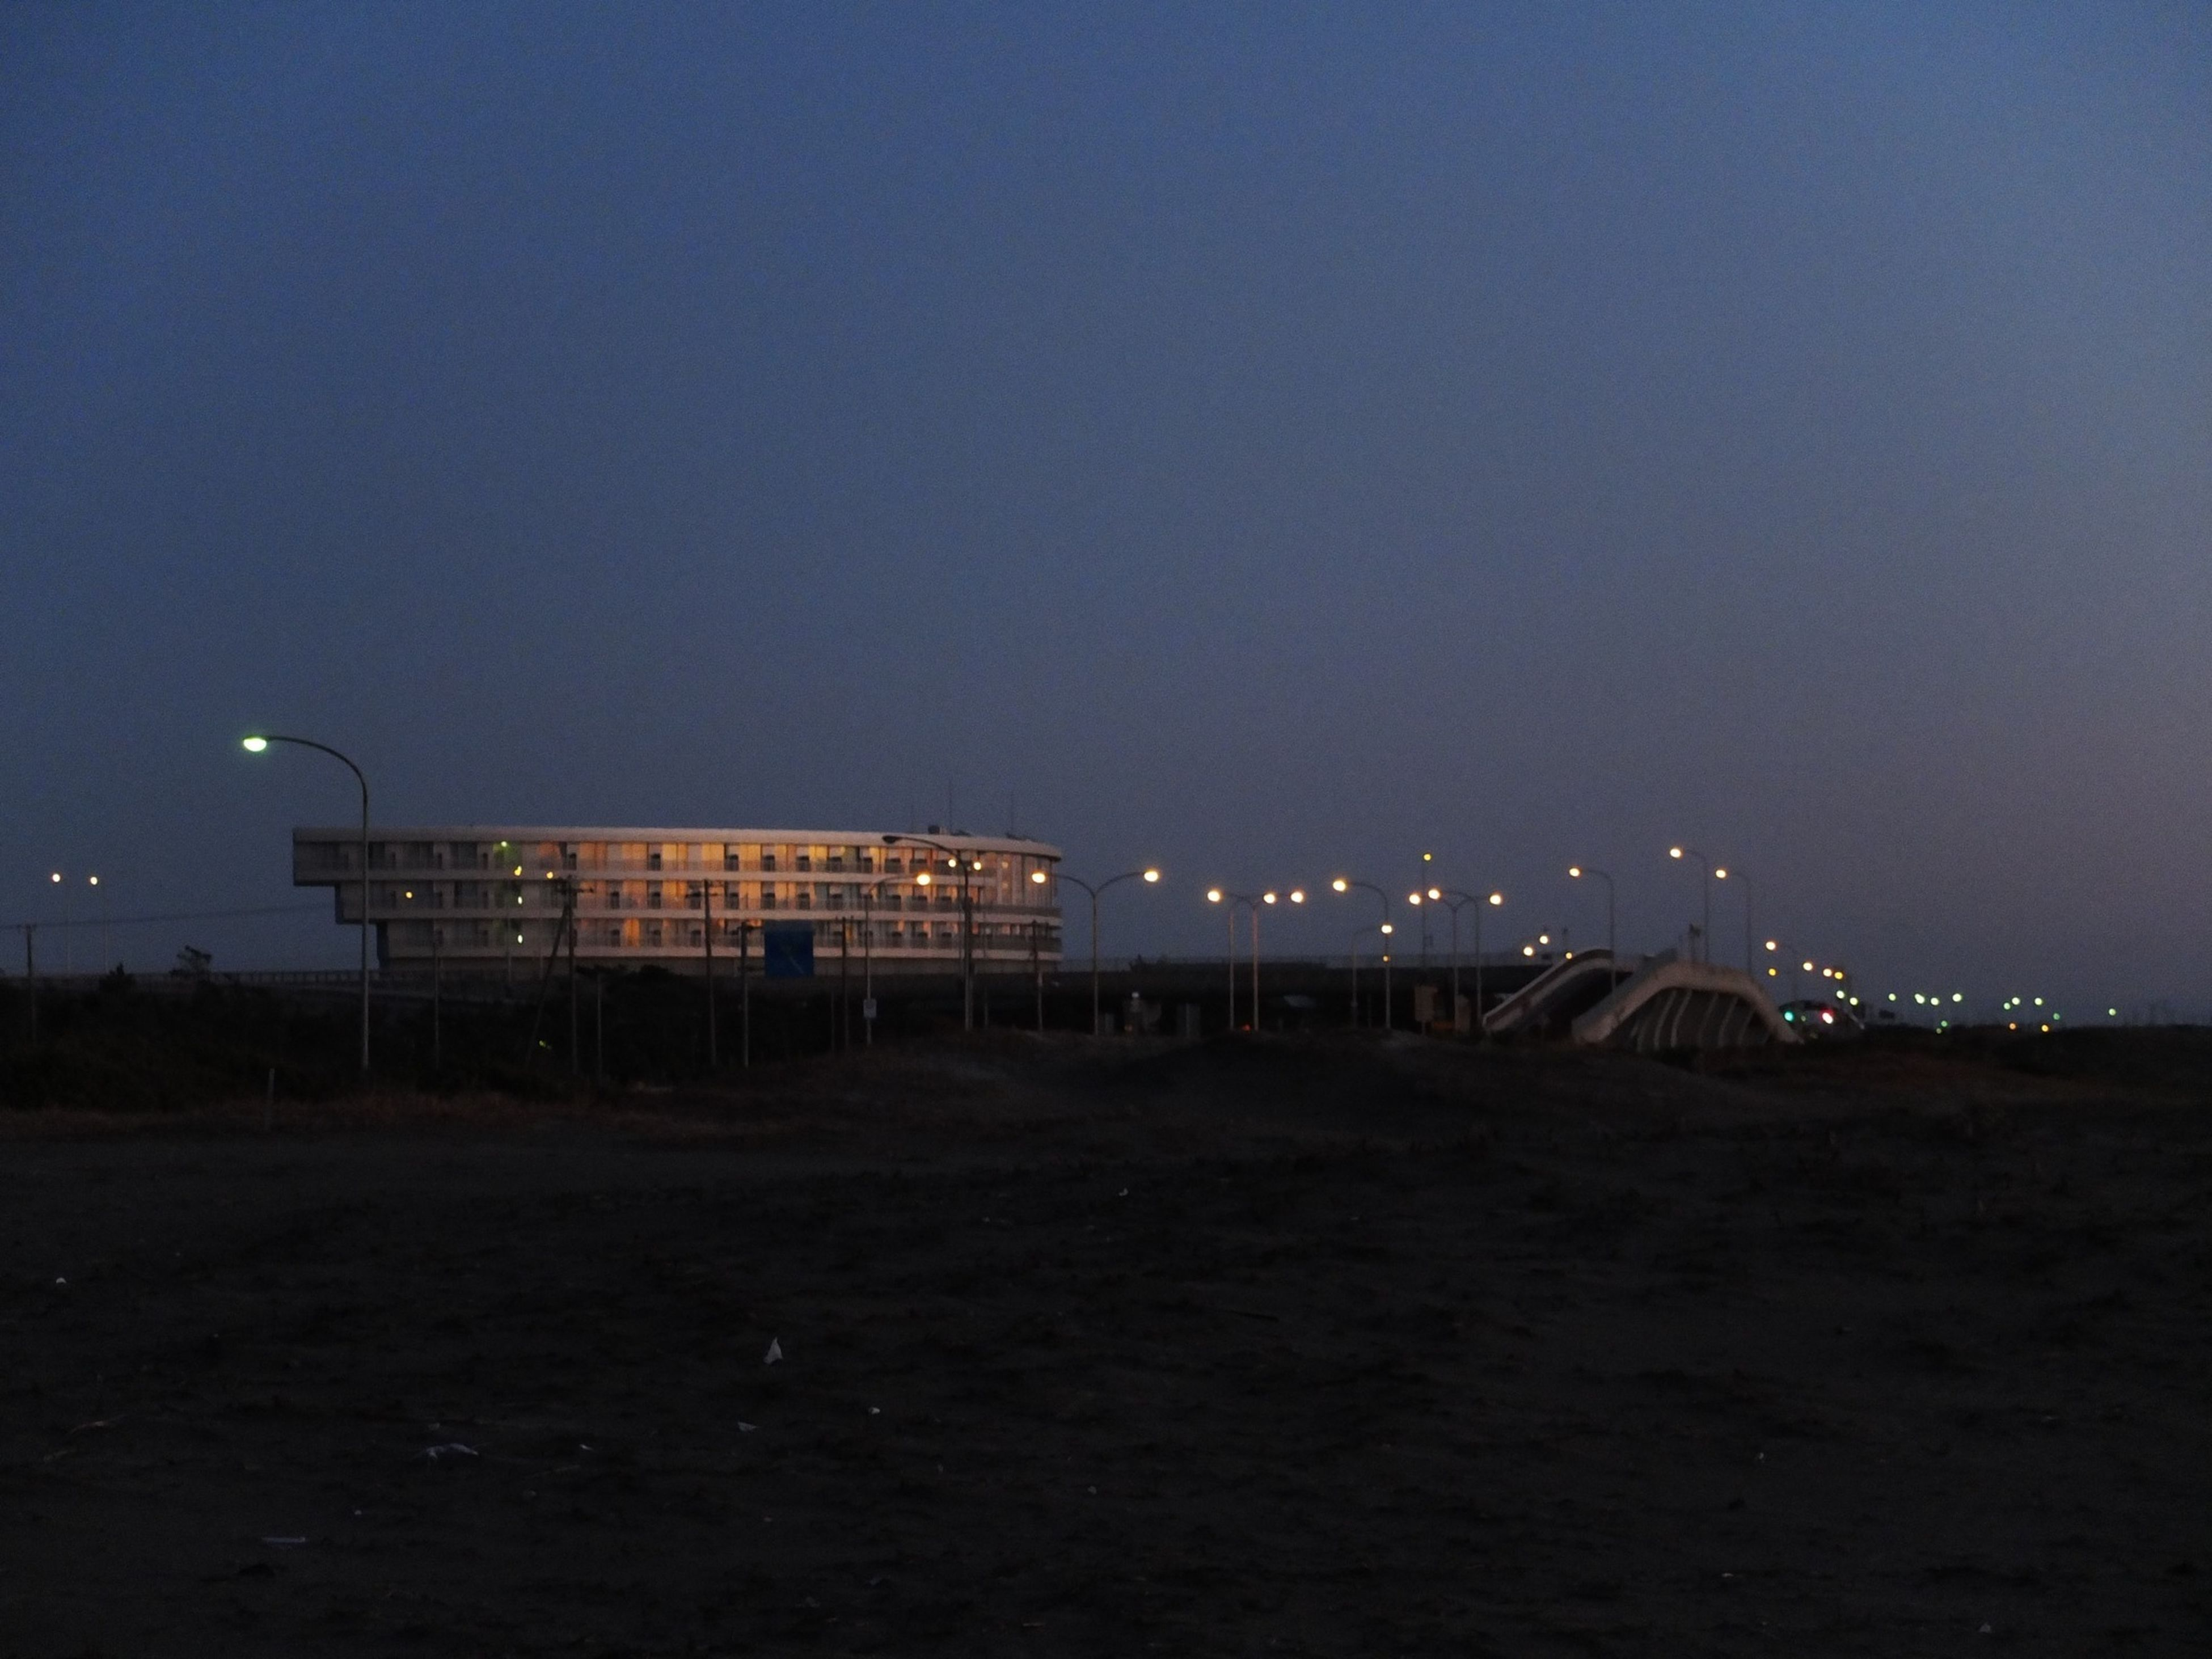 night, illuminated, architecture, built structure, copy space, sky, building exterior, clear sky, dusk, outdoors, no people, tranquility, dark, nature, landscape, city, beach, lighting equipment, scenics, tranquil scene